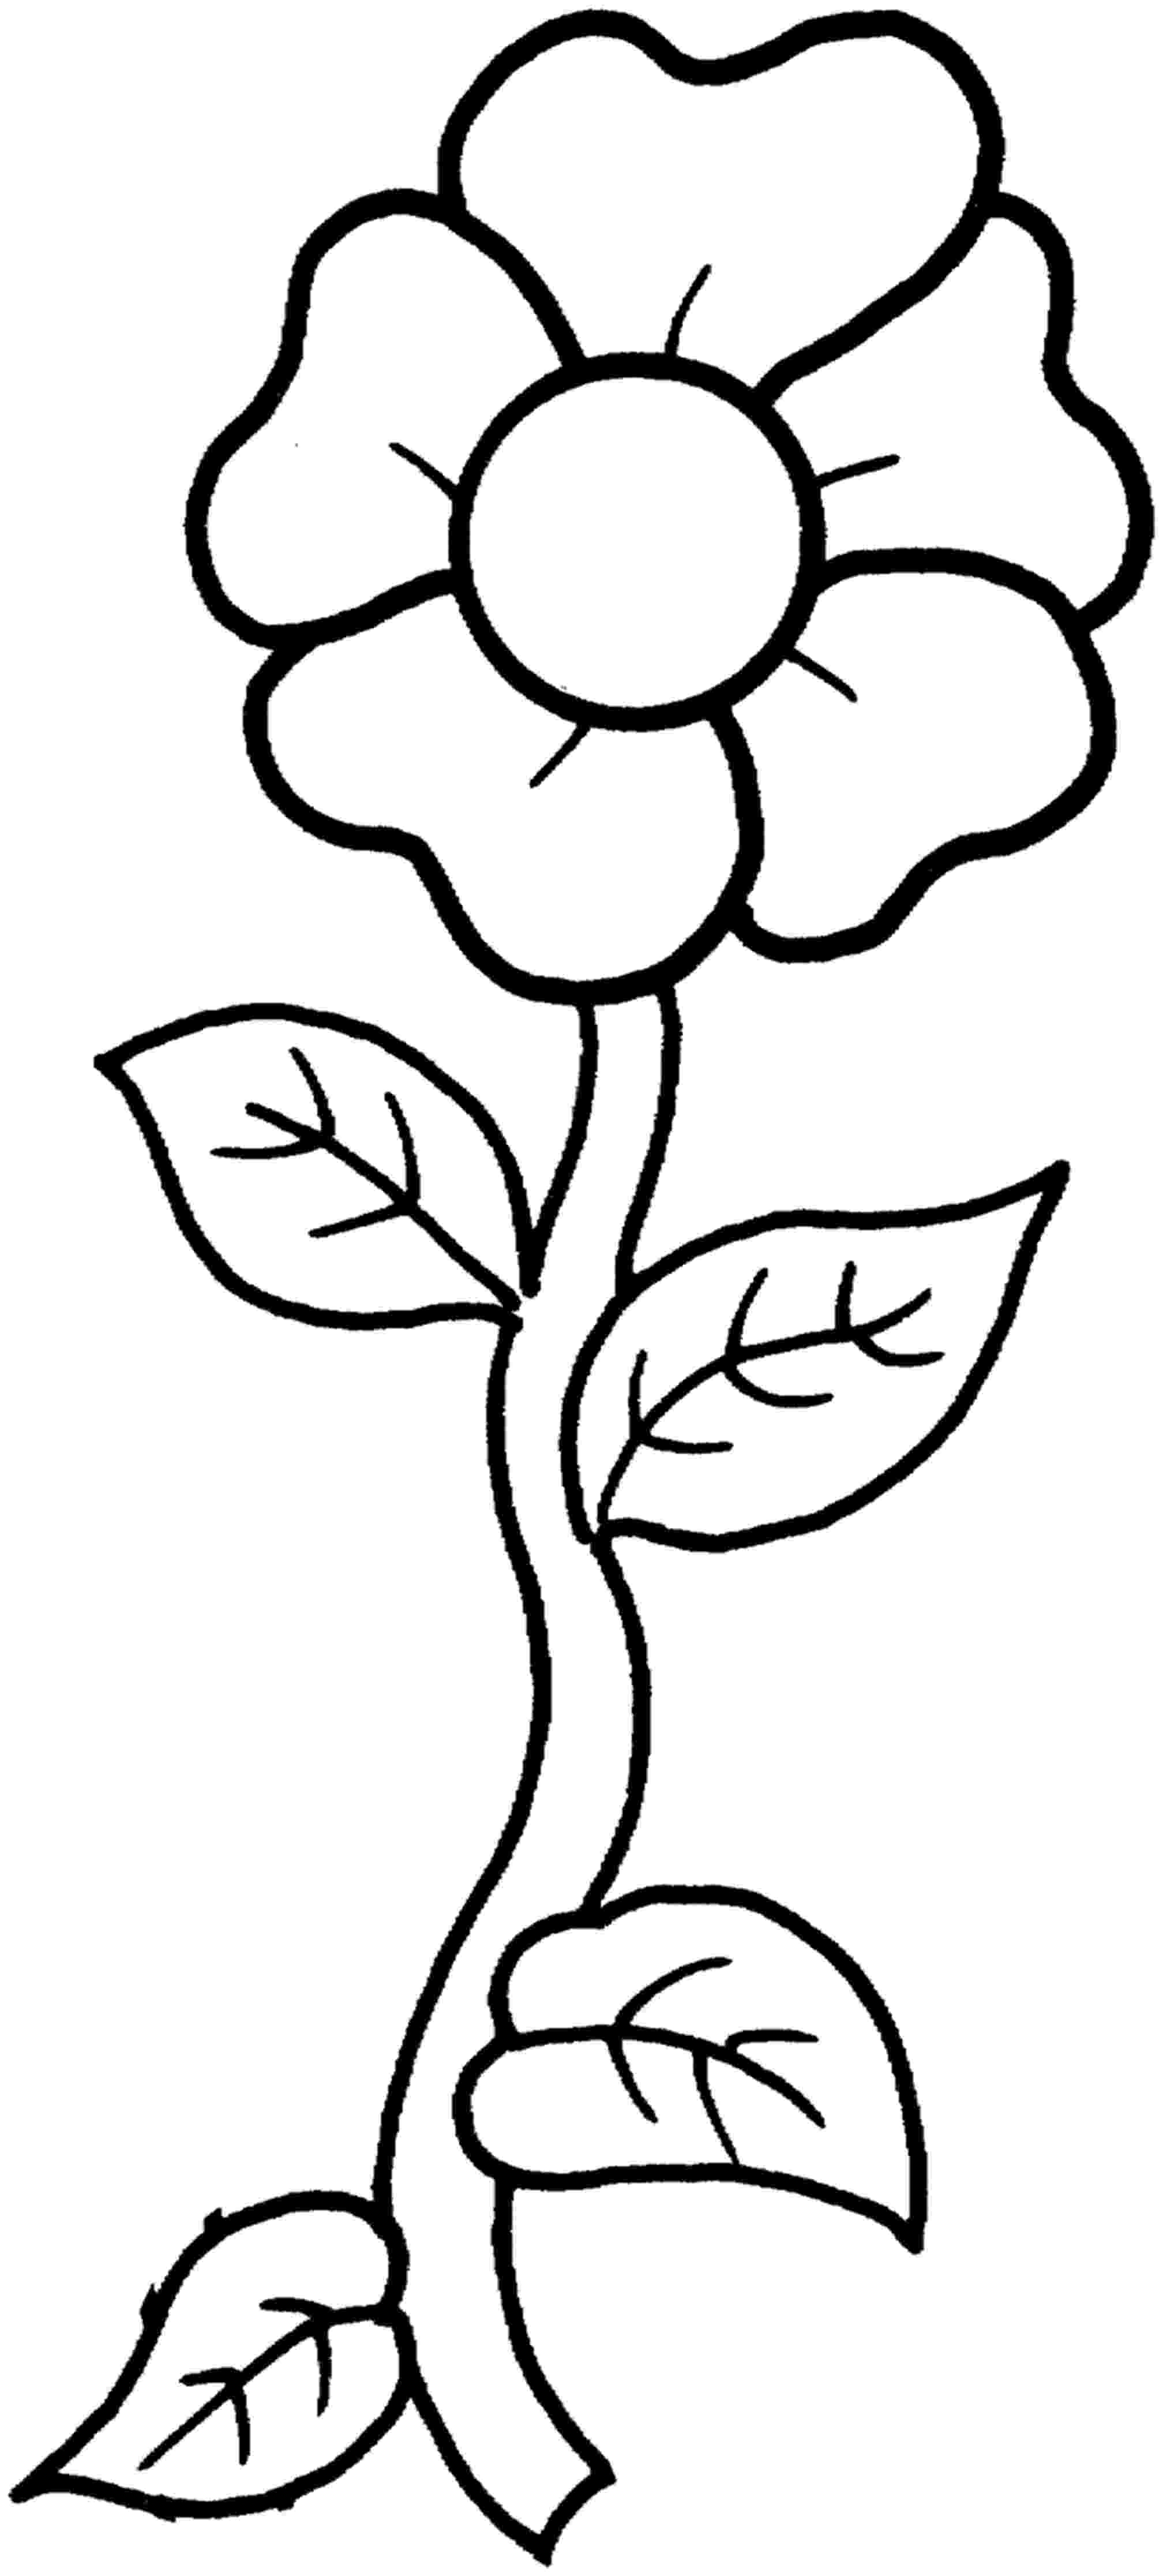 printable coloring pages for kids free printable elsa coloring pages for kids best kids printable pages coloring for